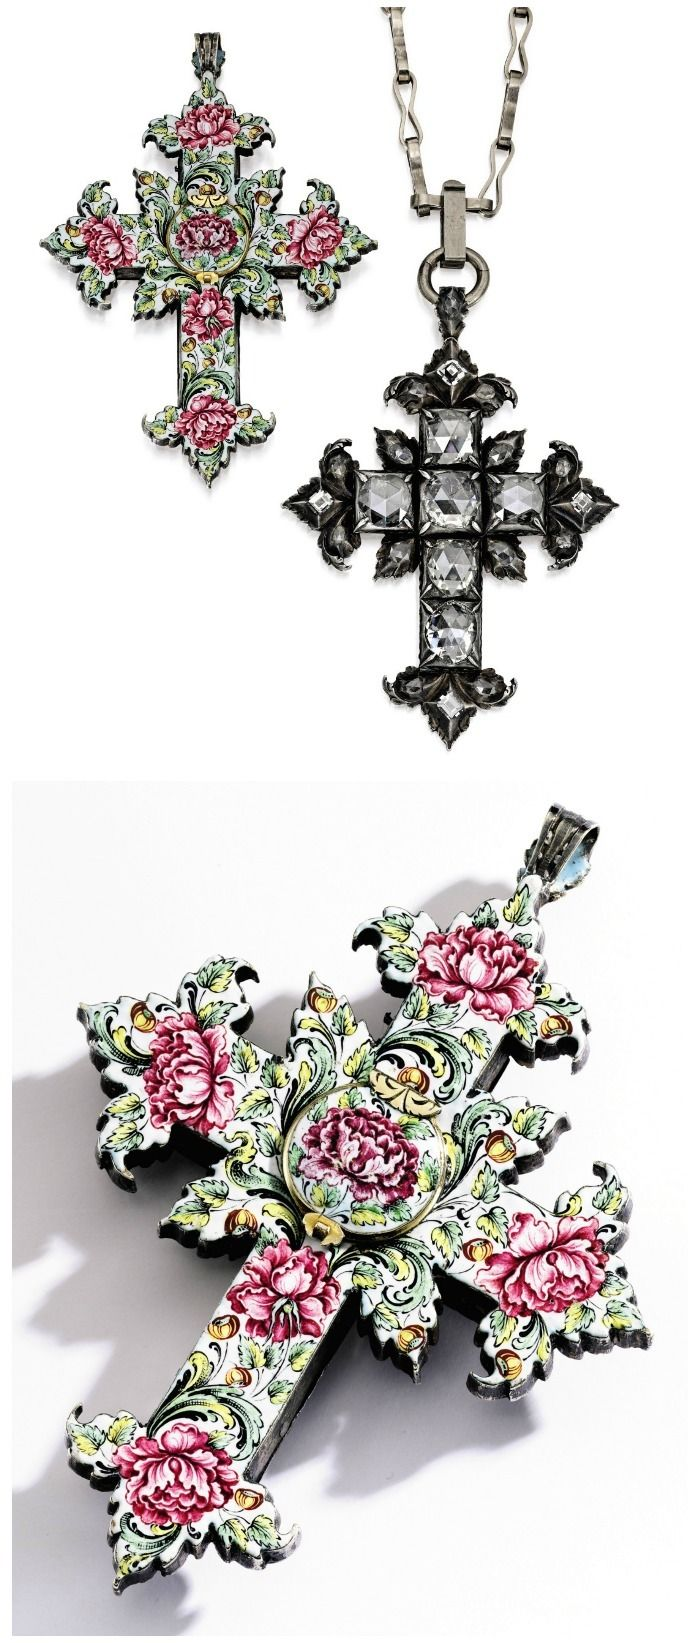 A silver, gold, diamond and enamel reliquary pendnt, Circa 1660. Centered by six Dutch rose-cut diamonds, accented by smaller rose and table-cut diamonds, the reverse in enamel with a concealed compartment.